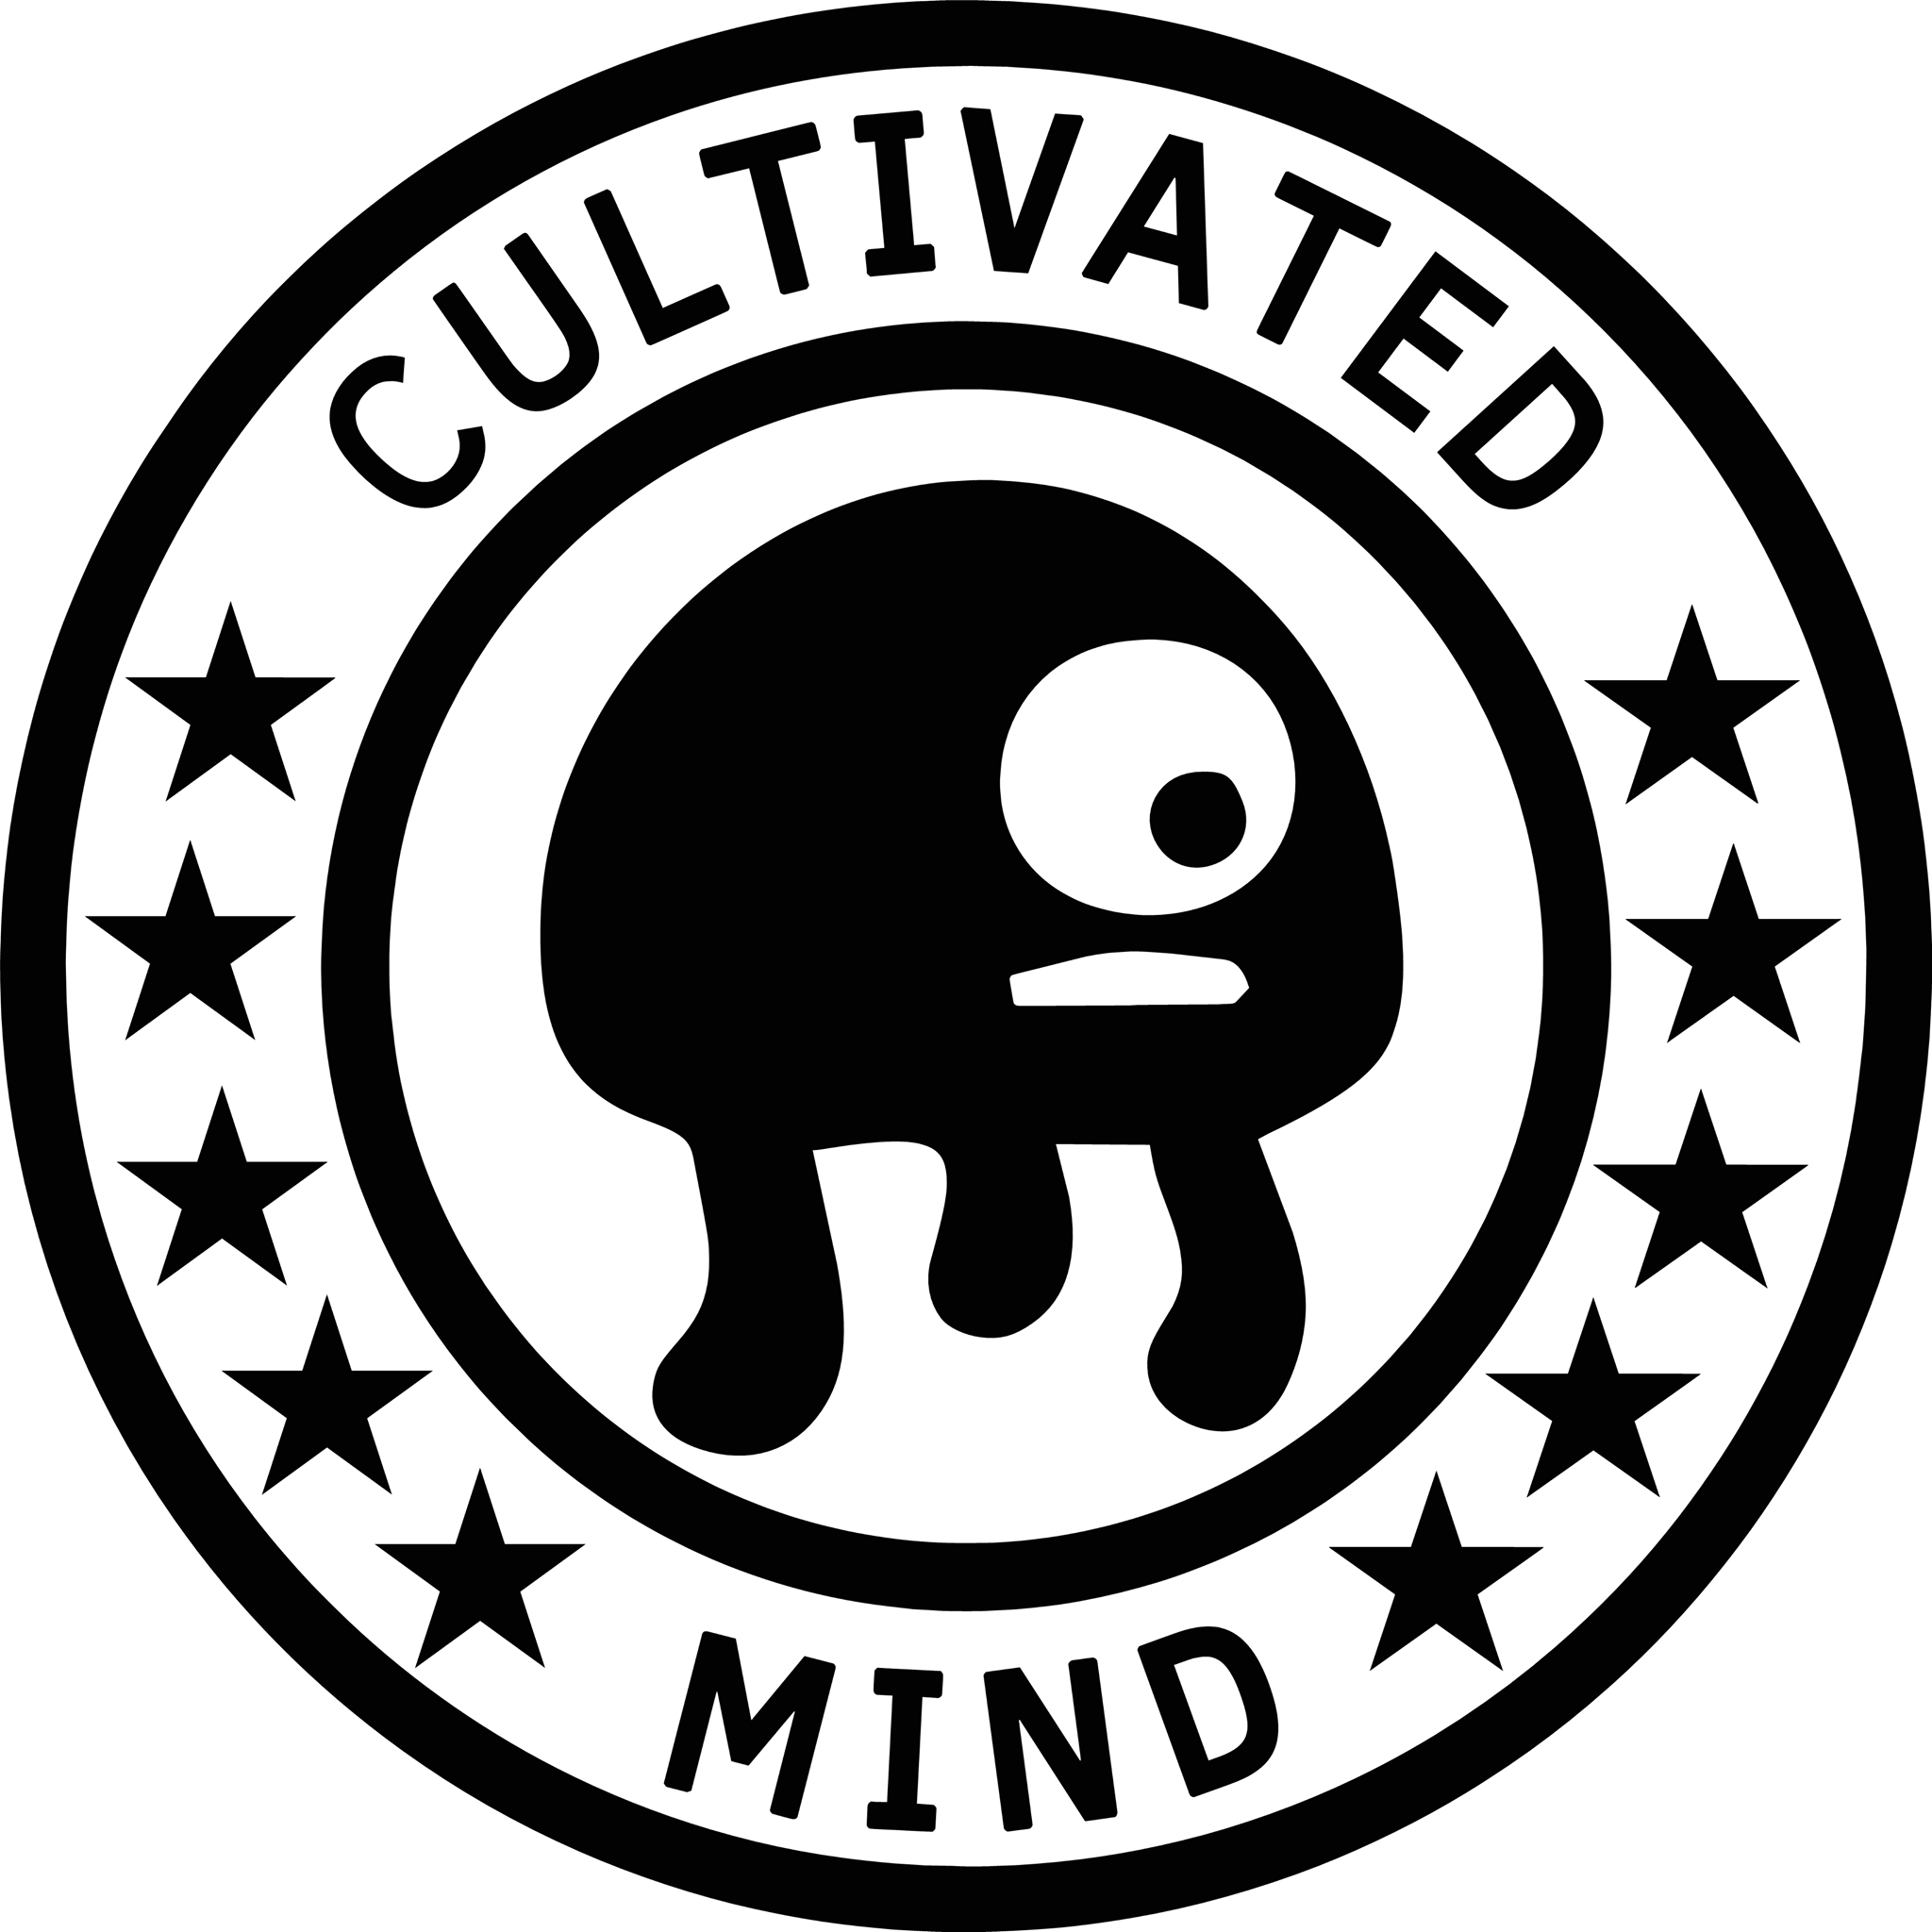 Cultivated Minds